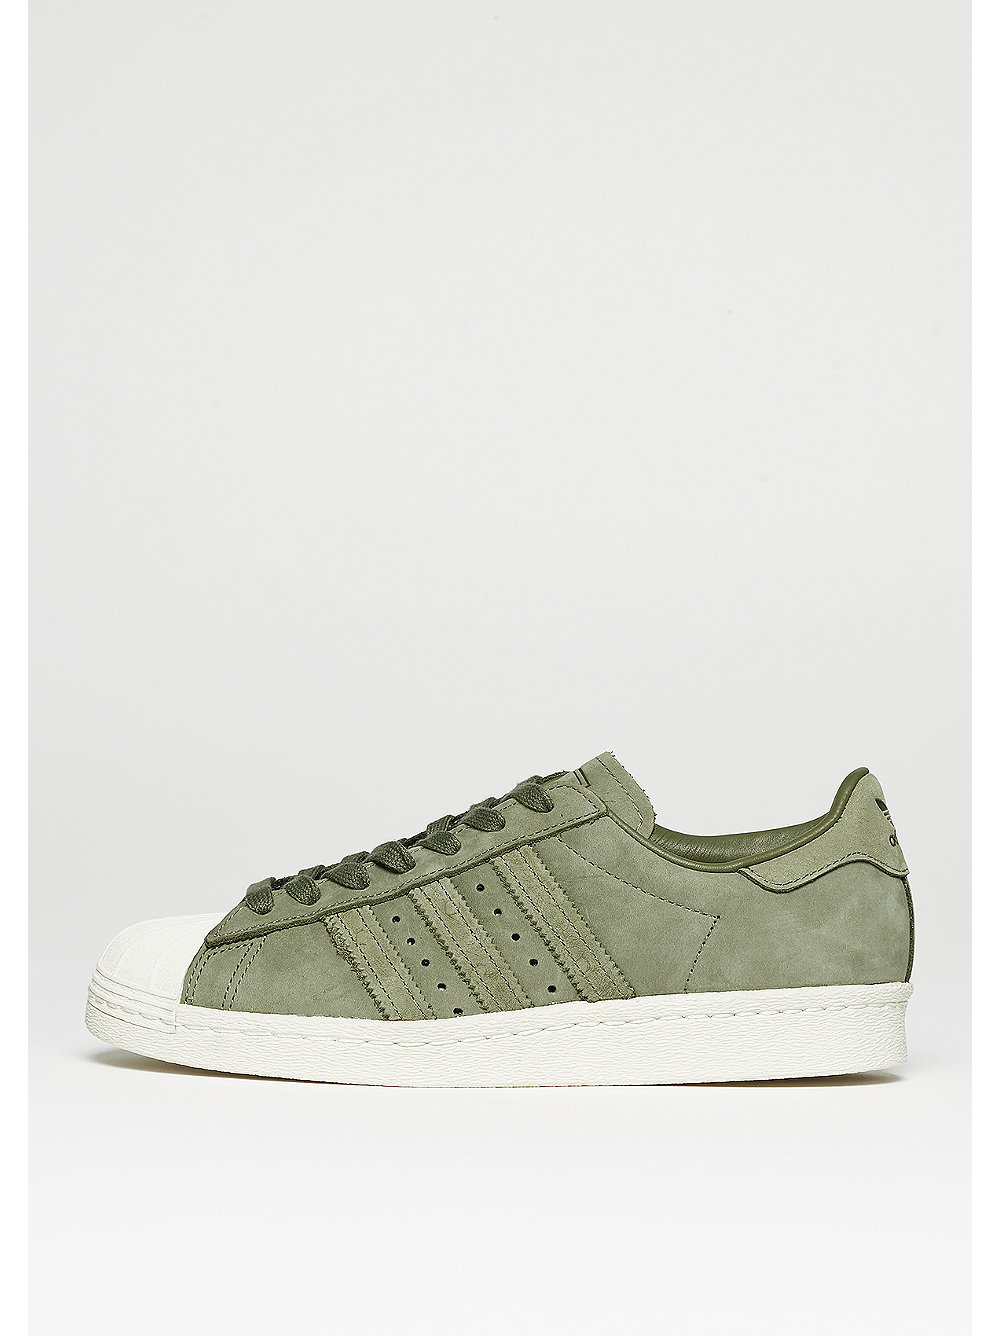 Adidas Superstars Khaki Grün